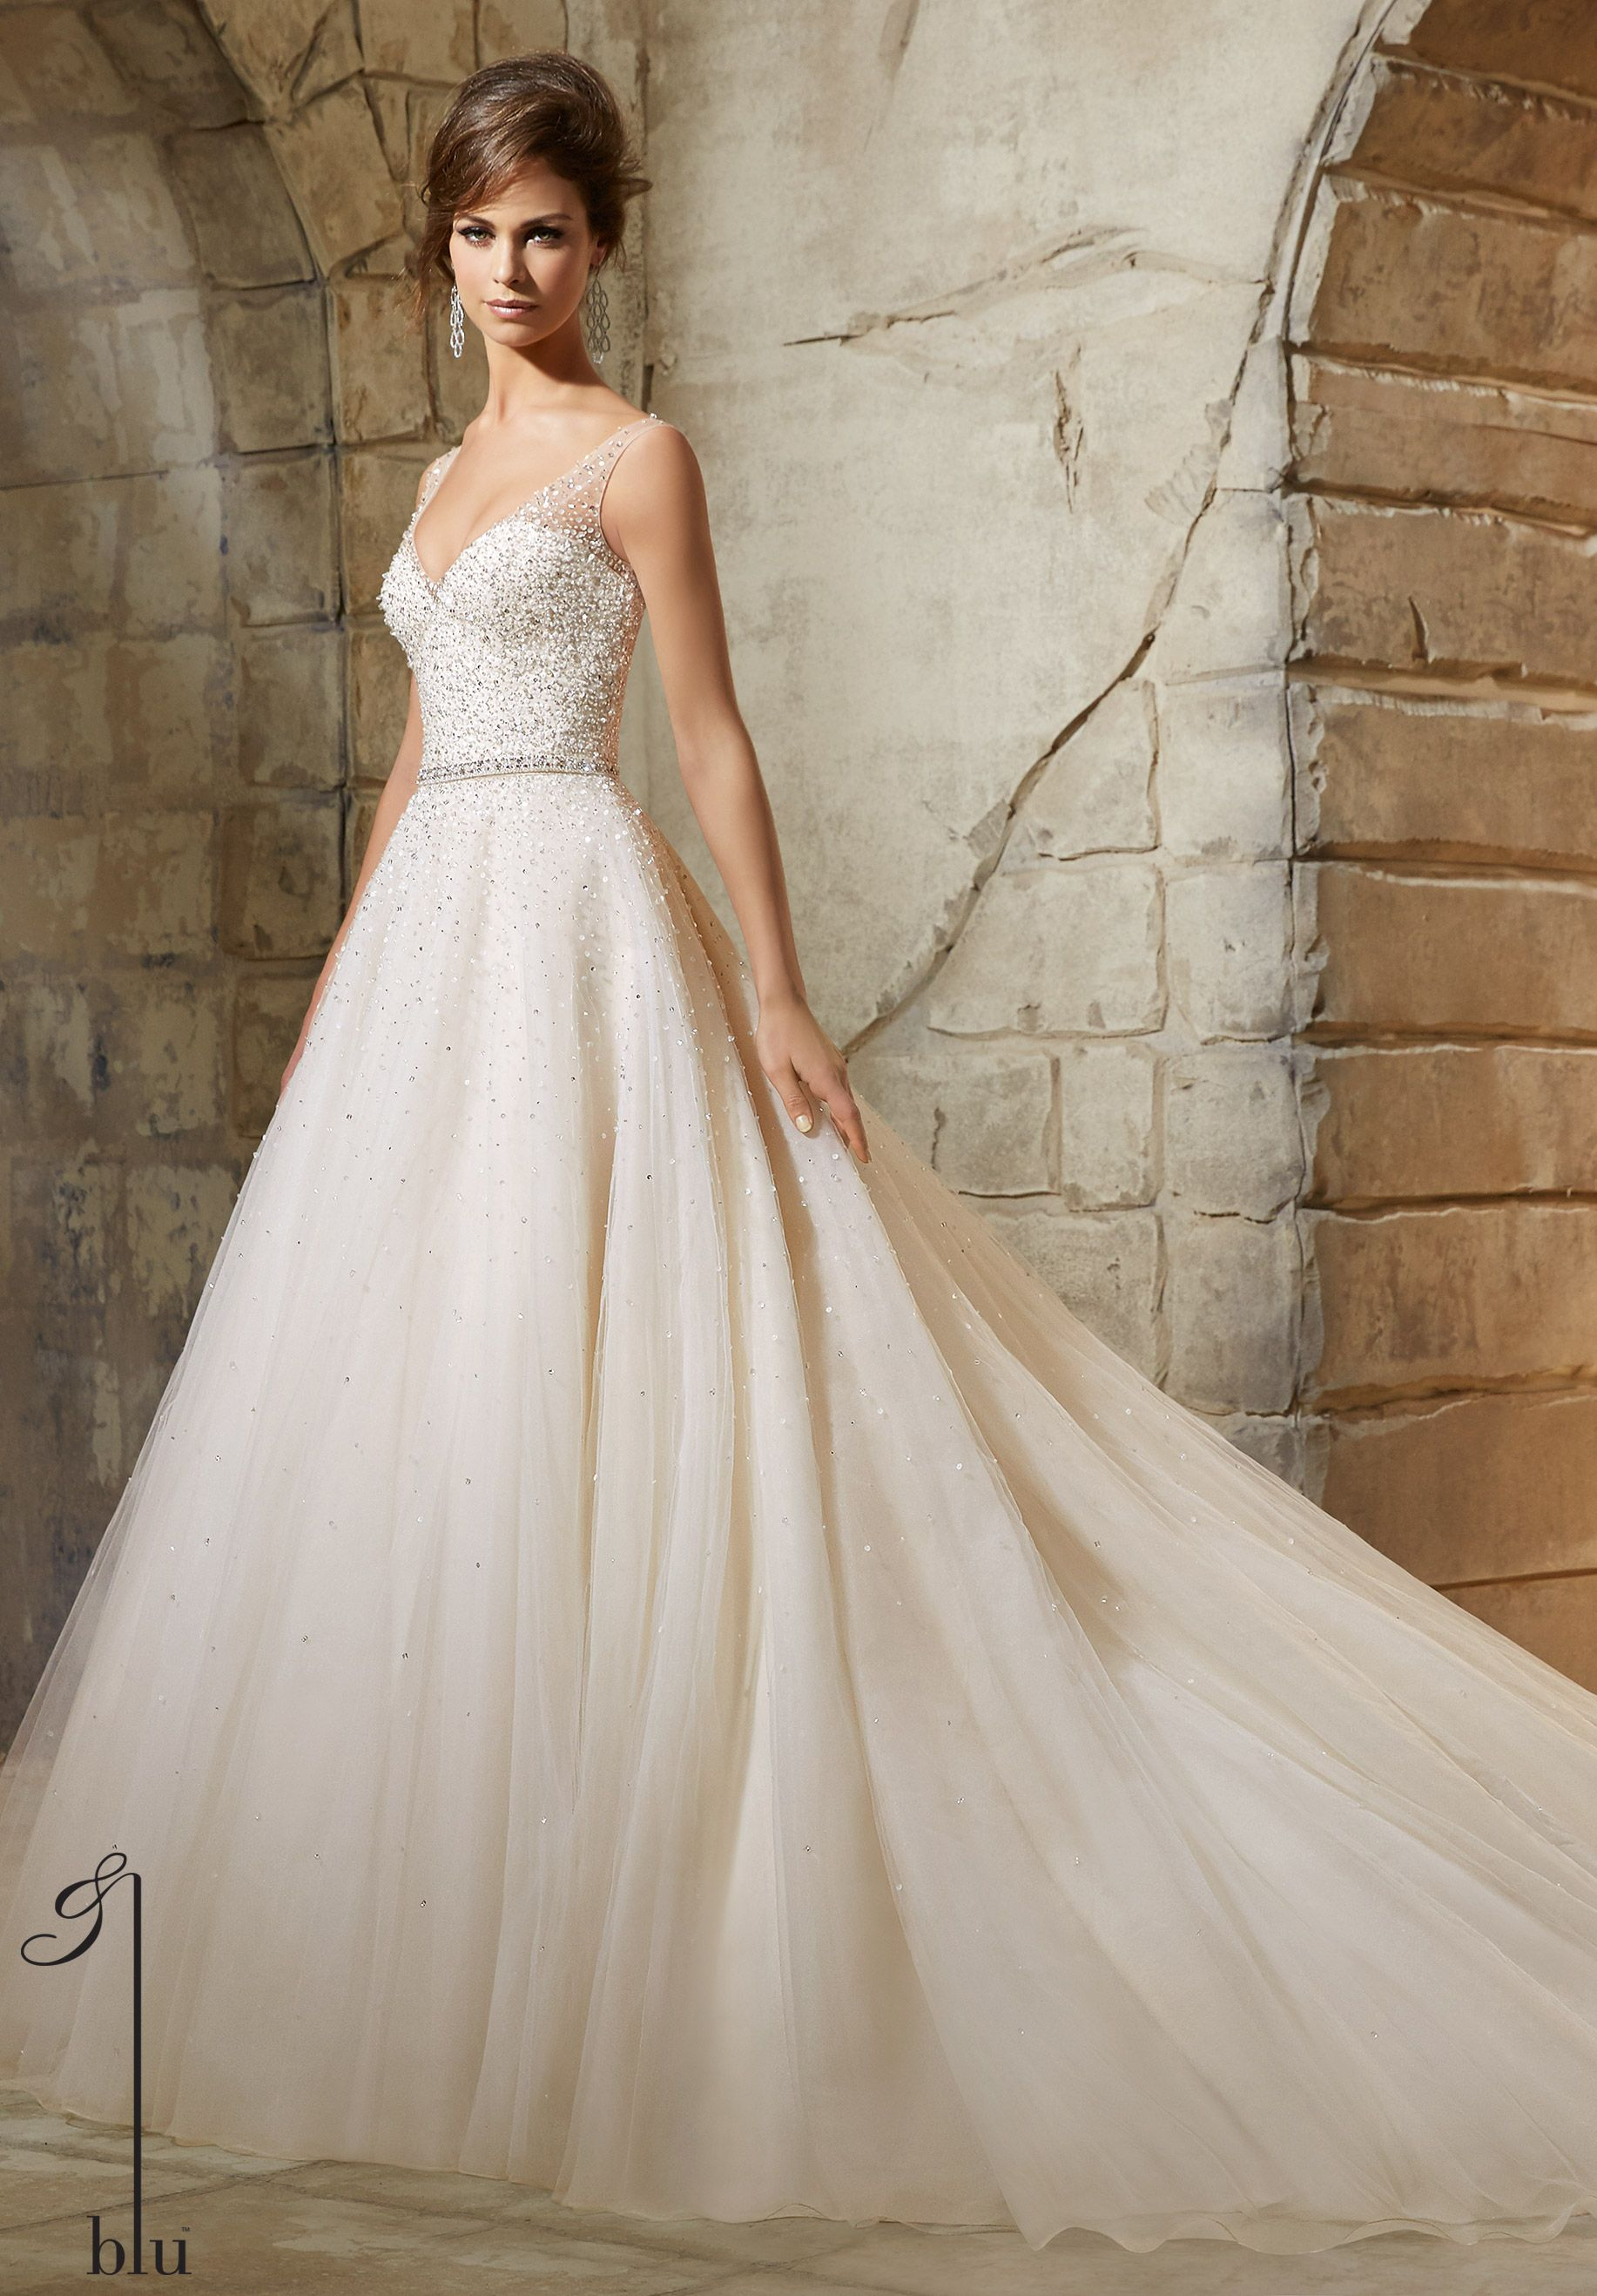 Blu available lows bridal wedding dresses pinterest